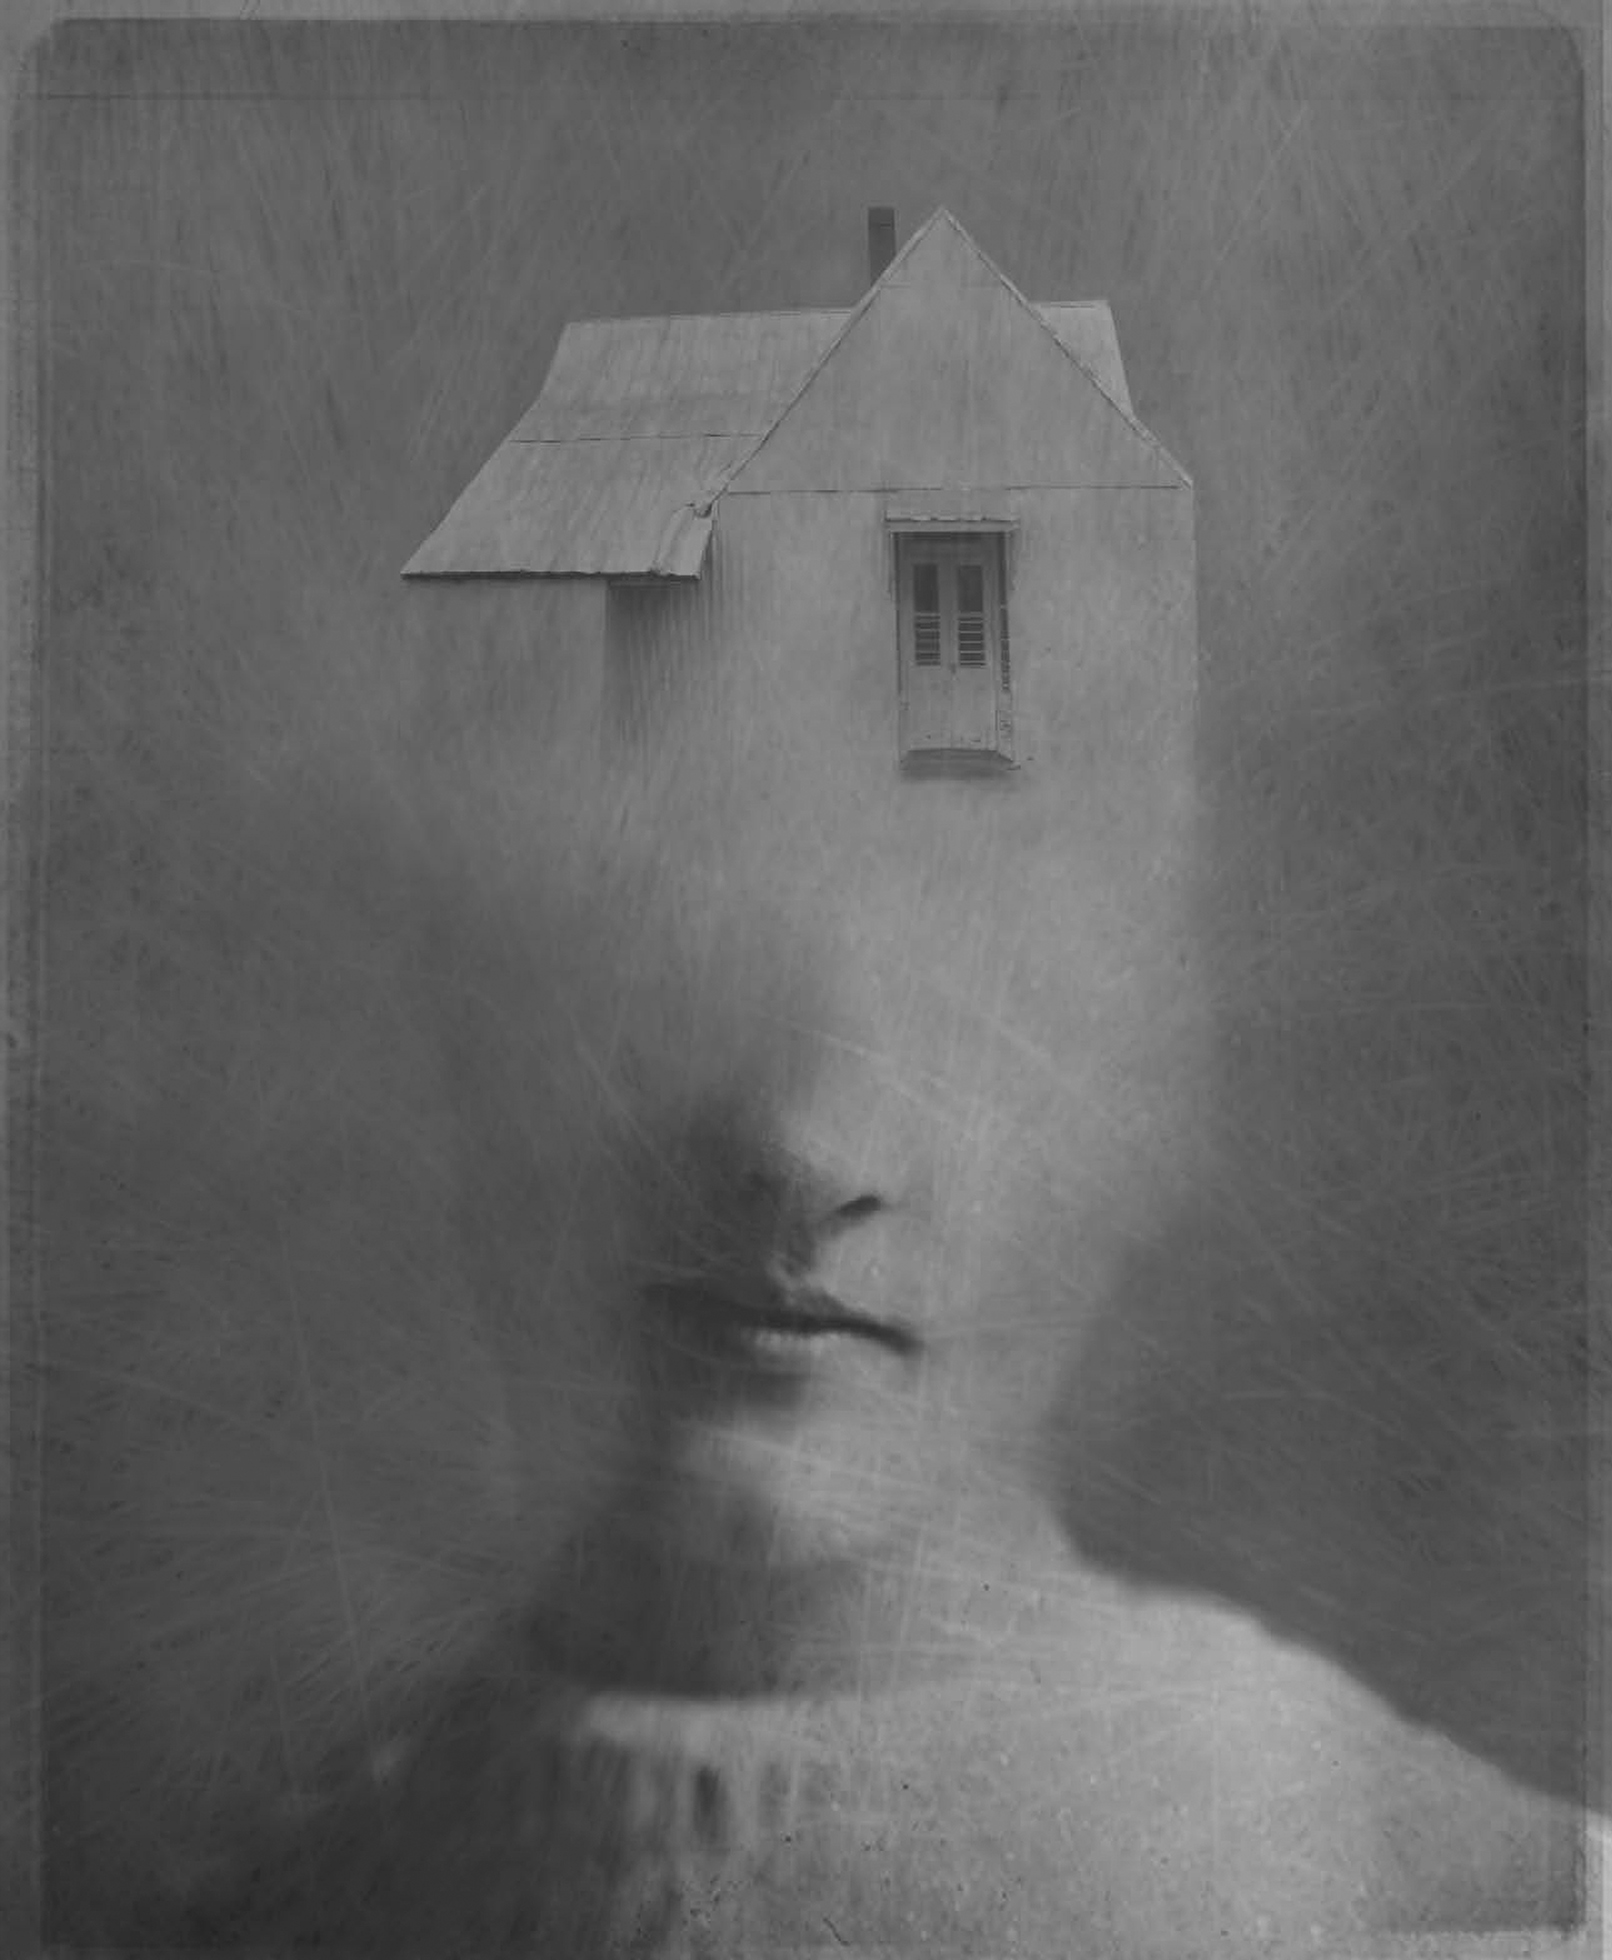 A digitally manipulated photo of a house that morphs into a person's face. The top of the head is a house and it seamlessly flows into a nose, mouth, and chin of a somber-expressioned person.